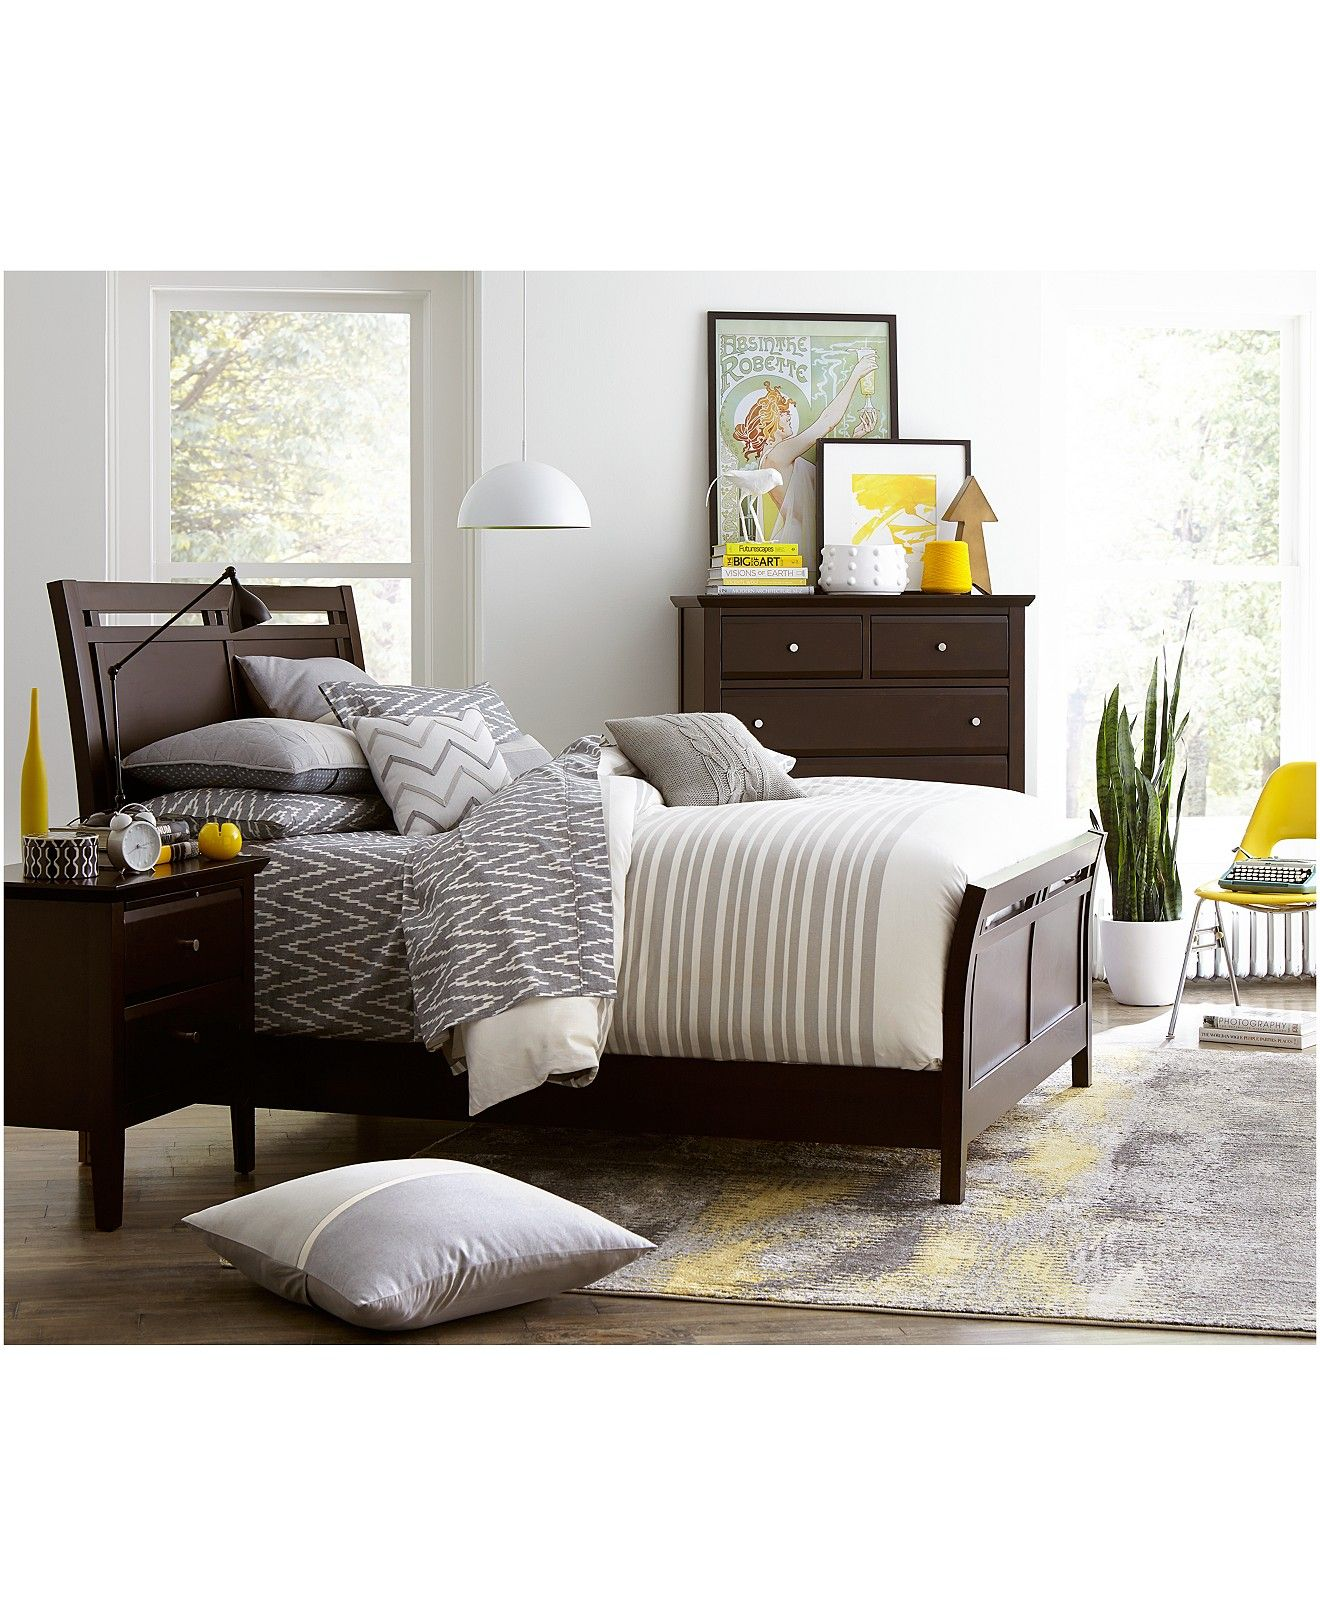 Edgewater Bedroom Furniture Collection - Furniture - Macy\'s ...